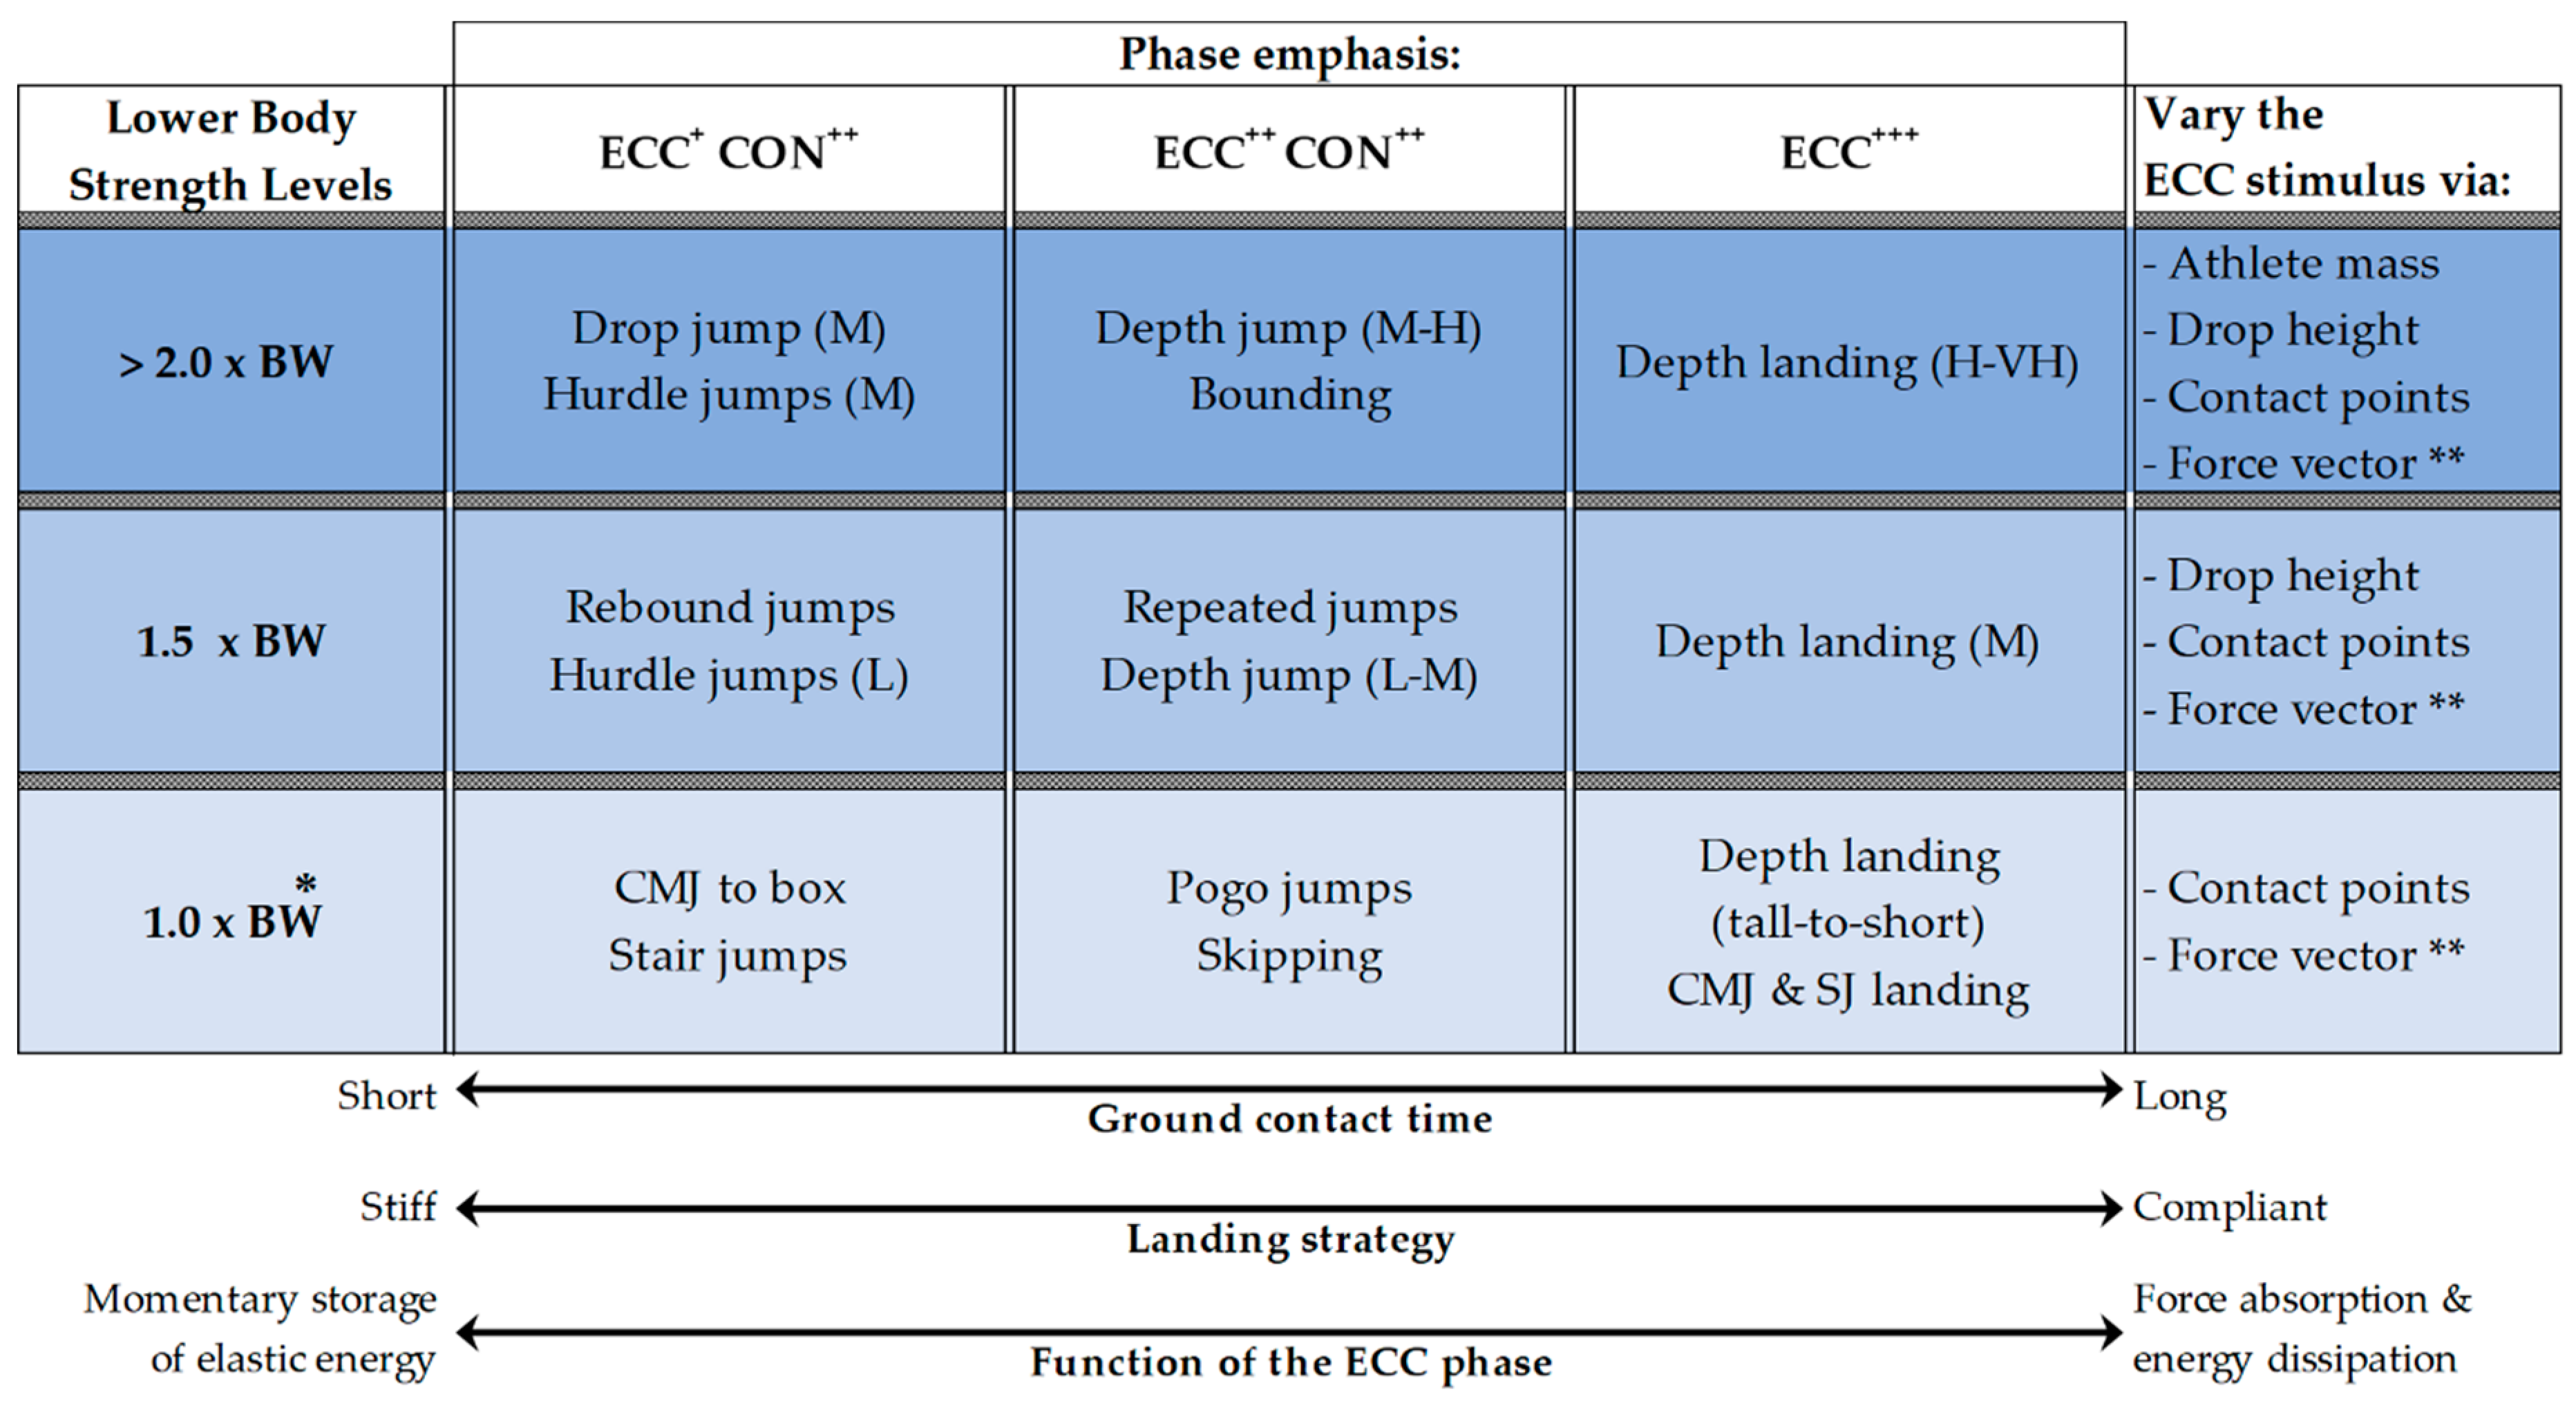 JFMK | Free Full-Text | Implementing Eccentric Resistance Training